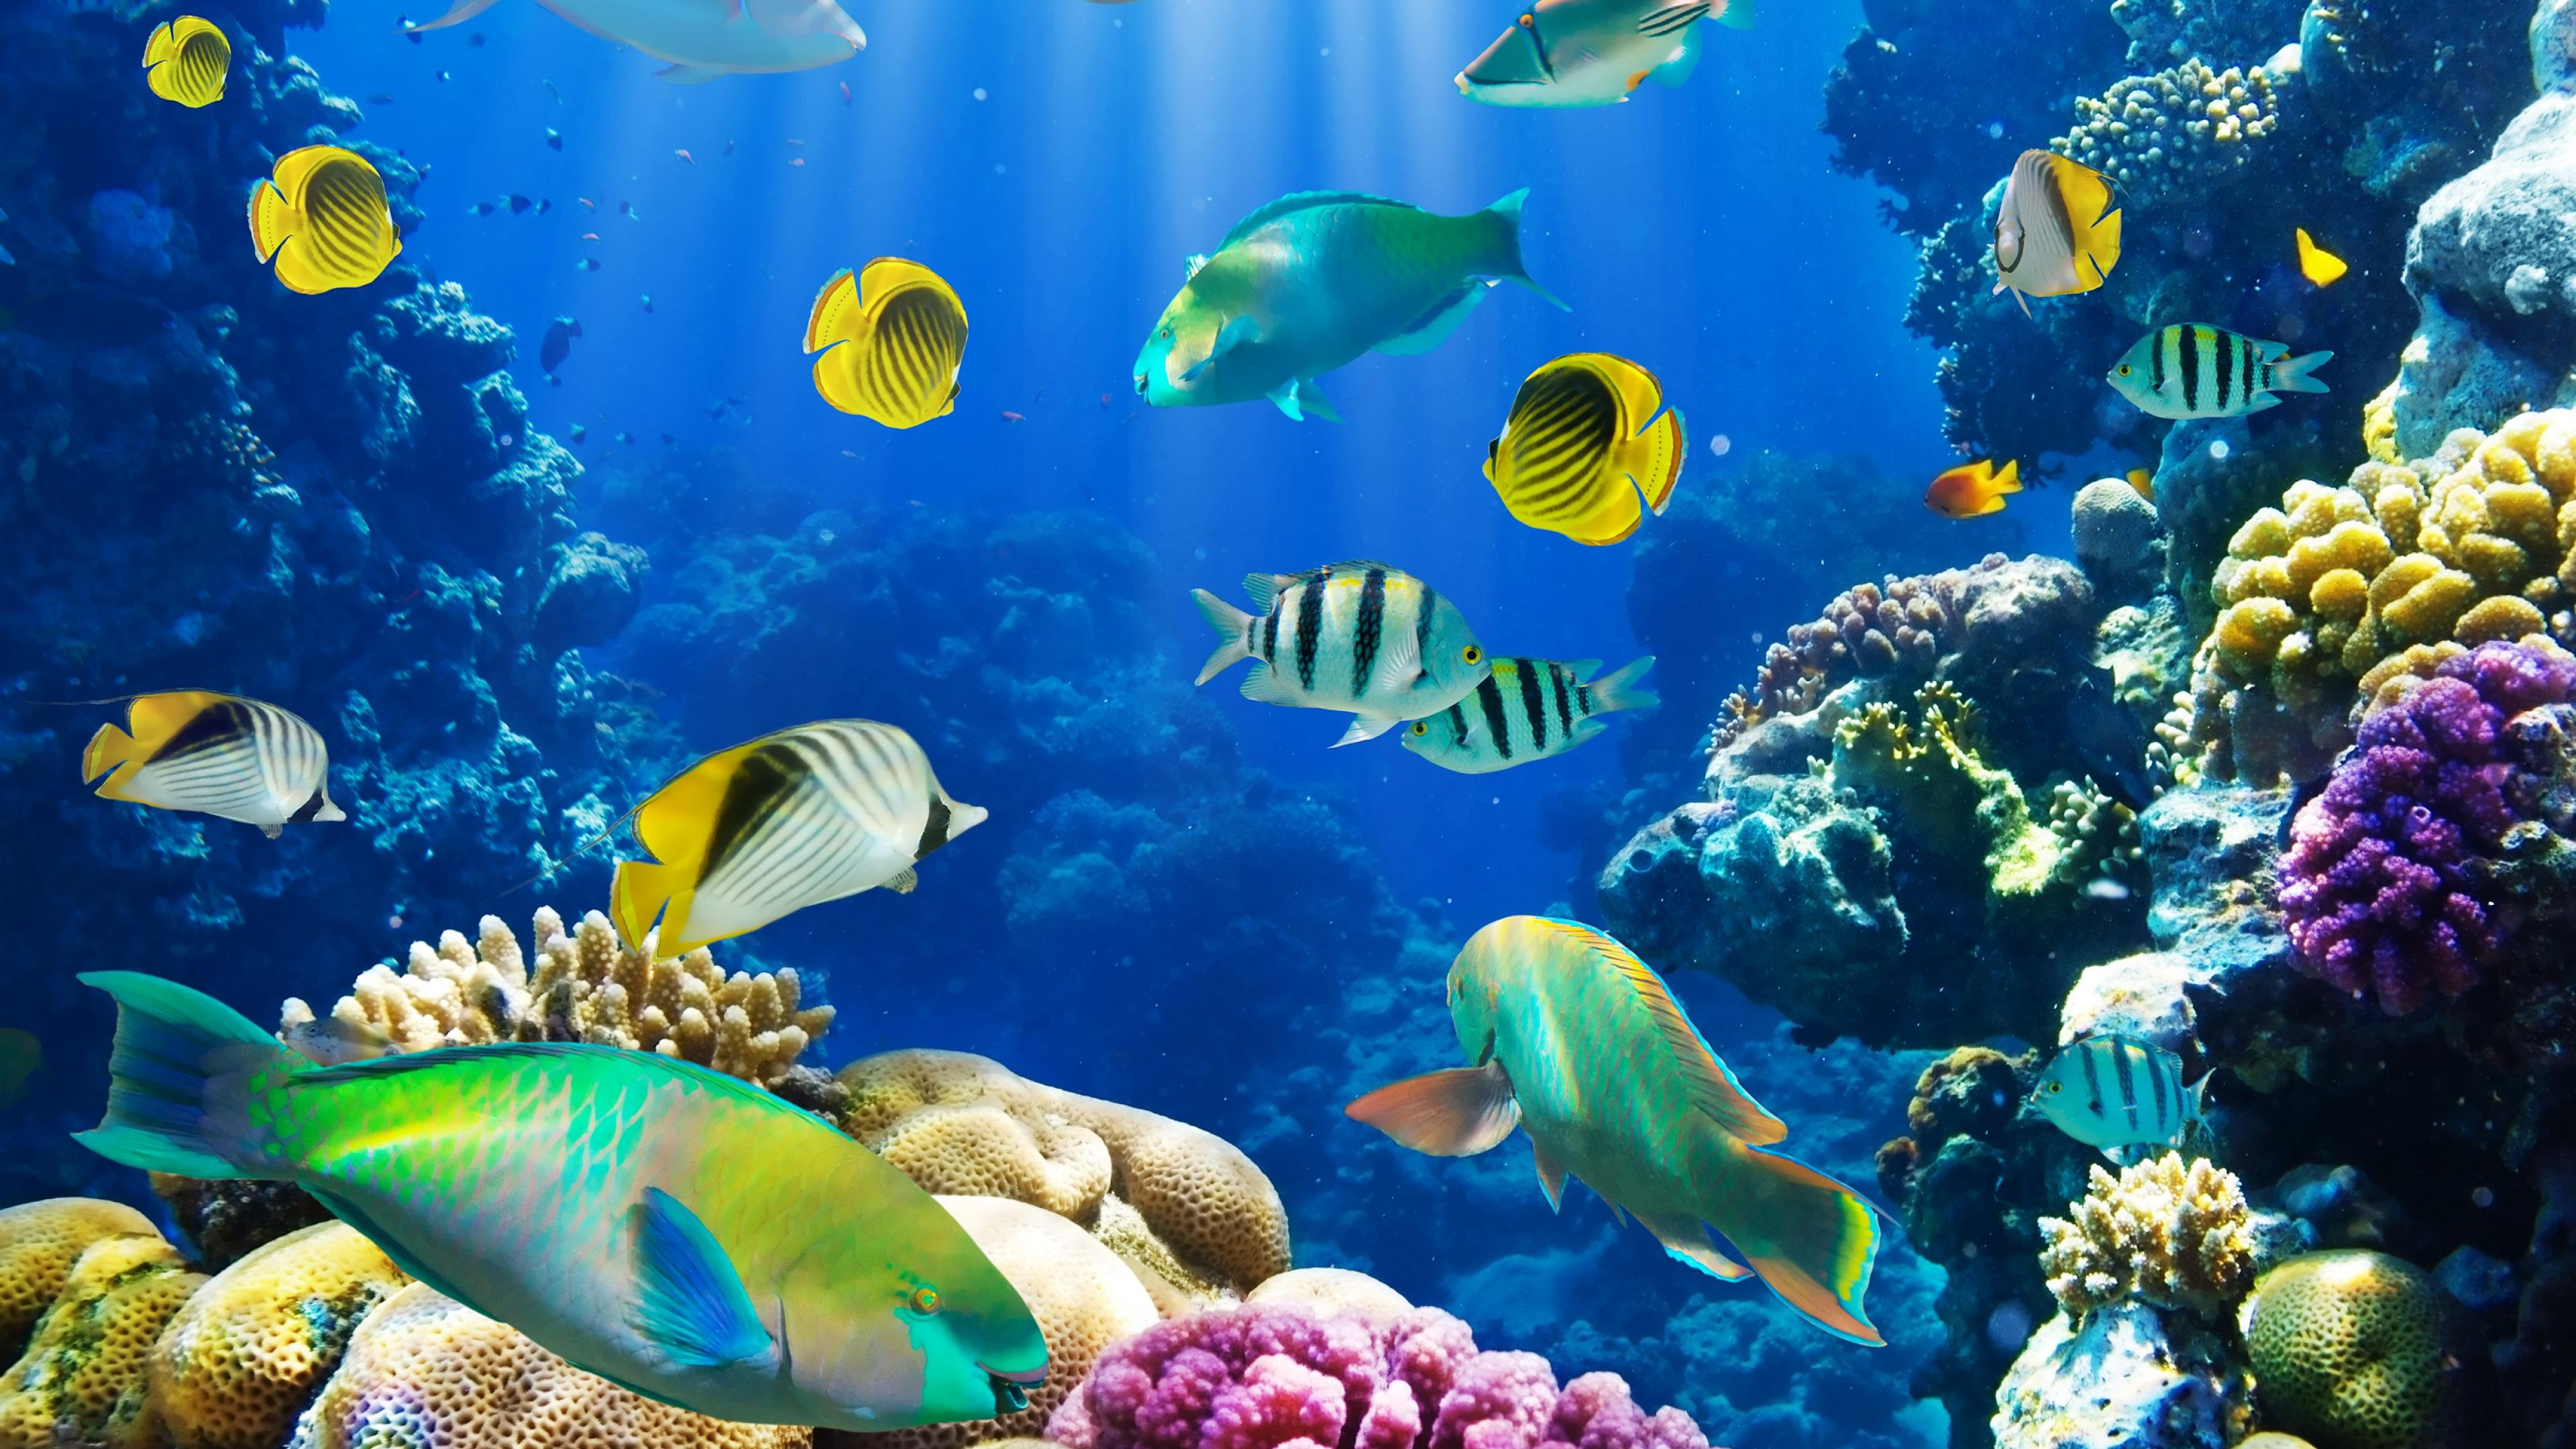 under the sea fish wallpapers - photo #12